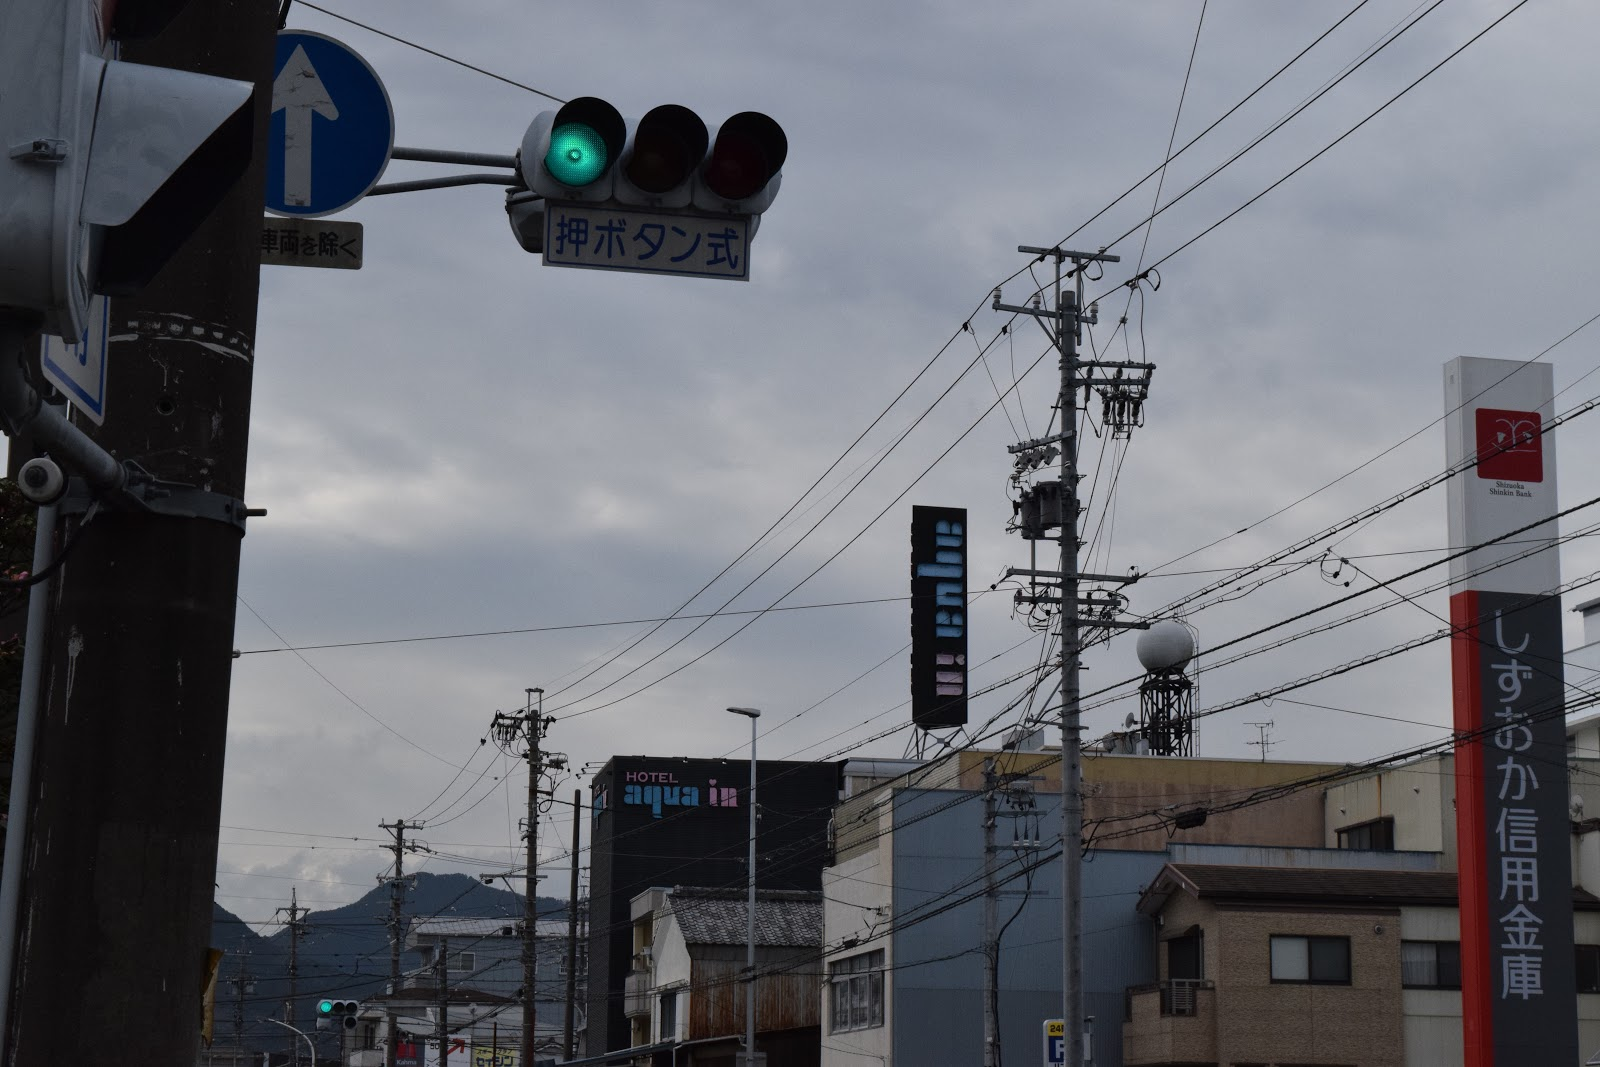 A road in the outskirts of Shizuoka city